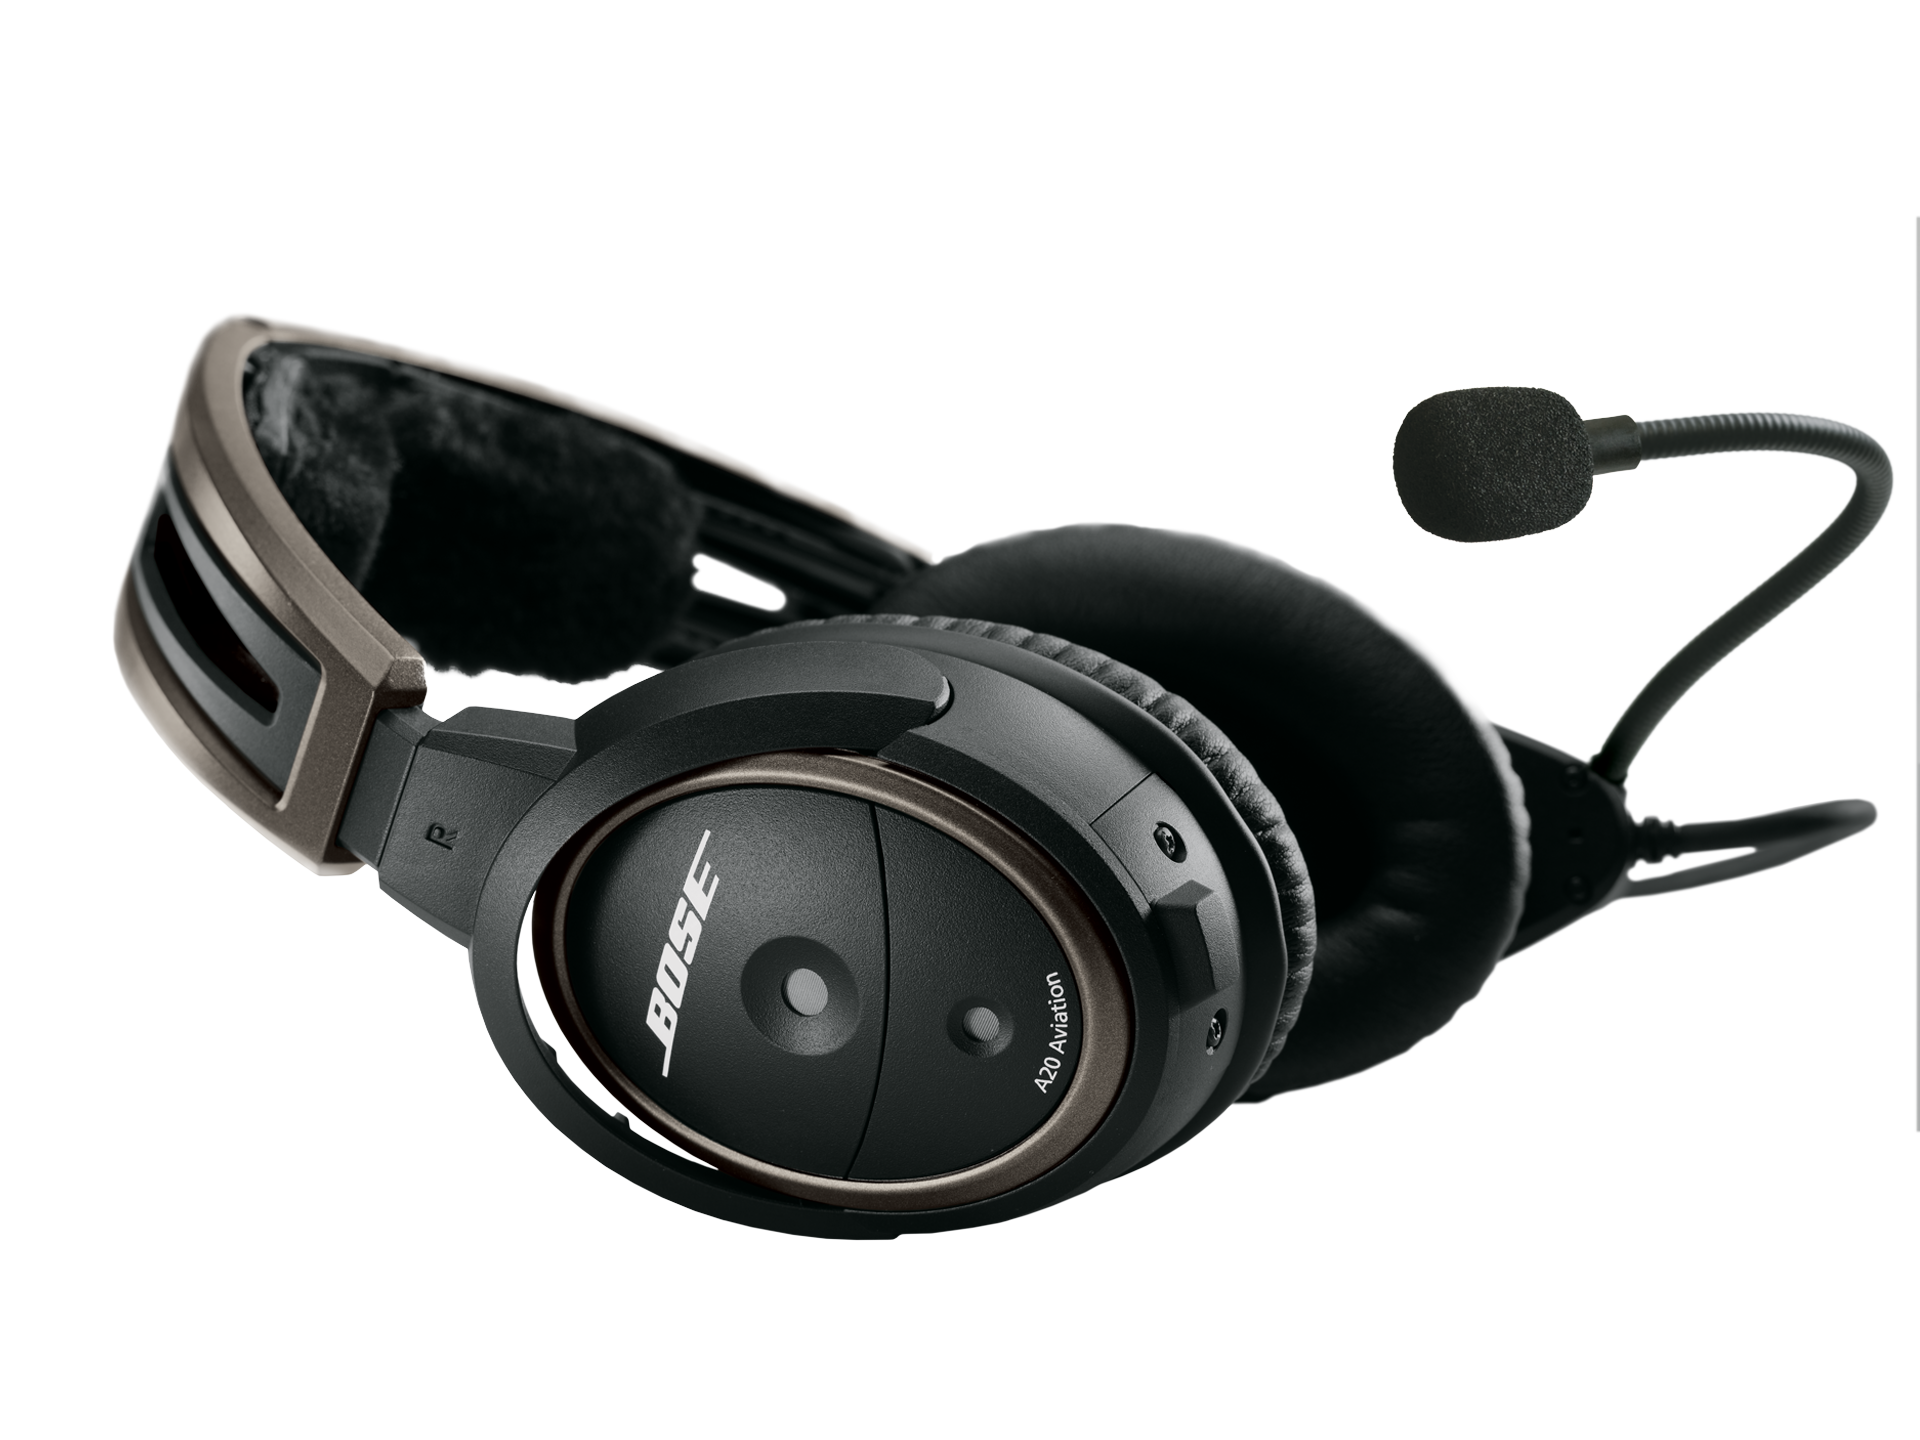 Bose A20 Headset with Fischer Plug, Bluetooth, Battery Powered, Straight Cable, Hi Imp (324843-3050)Image Id:144813